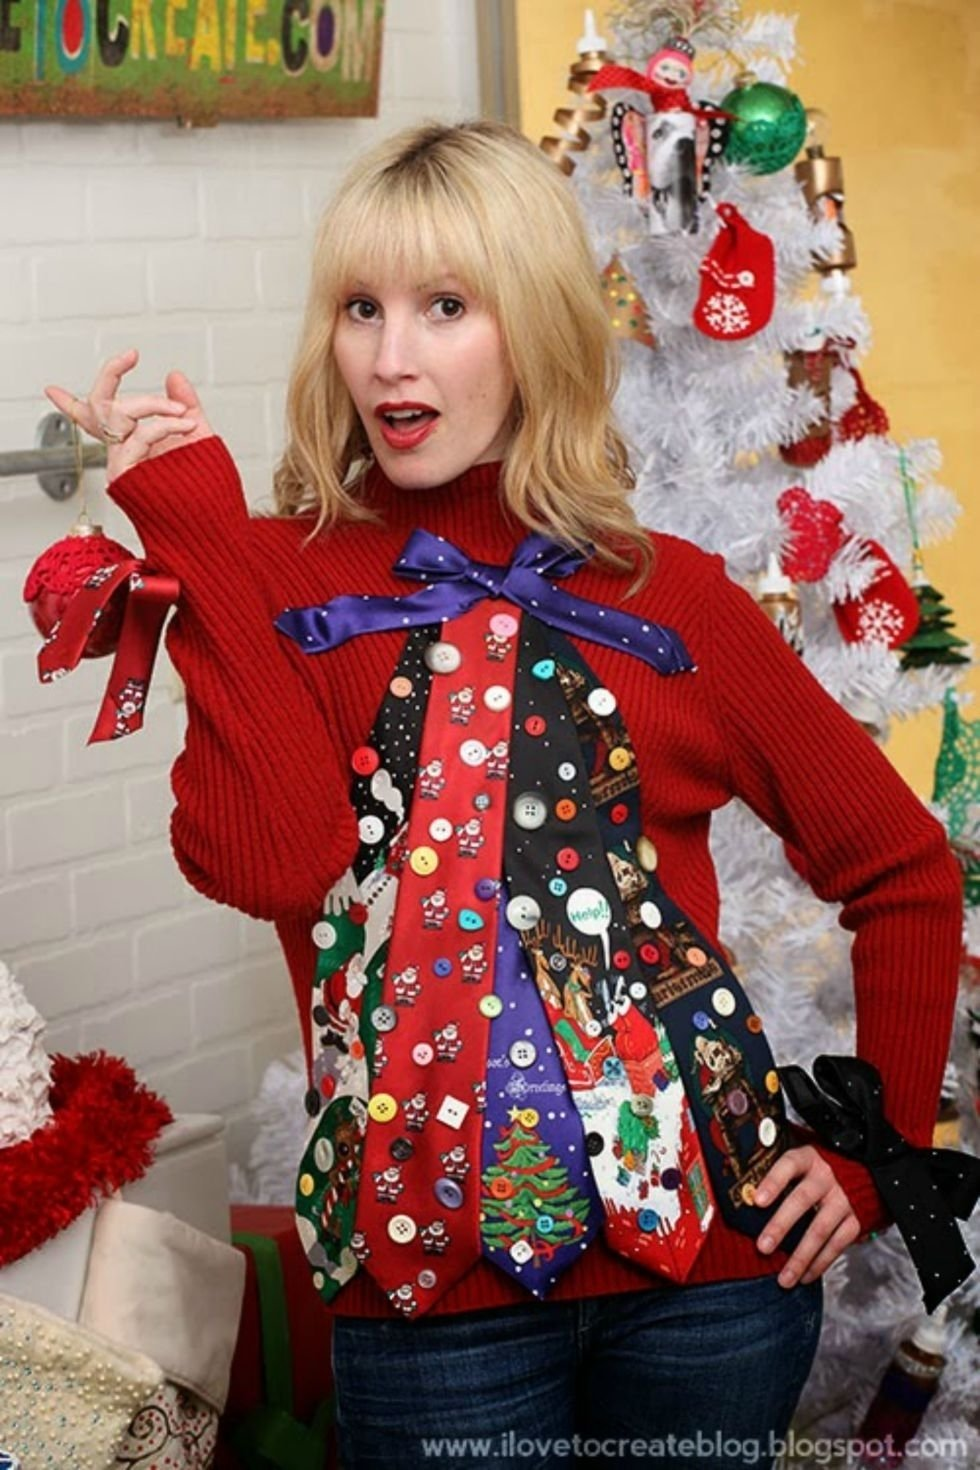 10 Pretty Ugly Christmas Sweater Ideas Diy 23 ugly christmas sweater ideas to buy and diy tacky christmas 6 2020